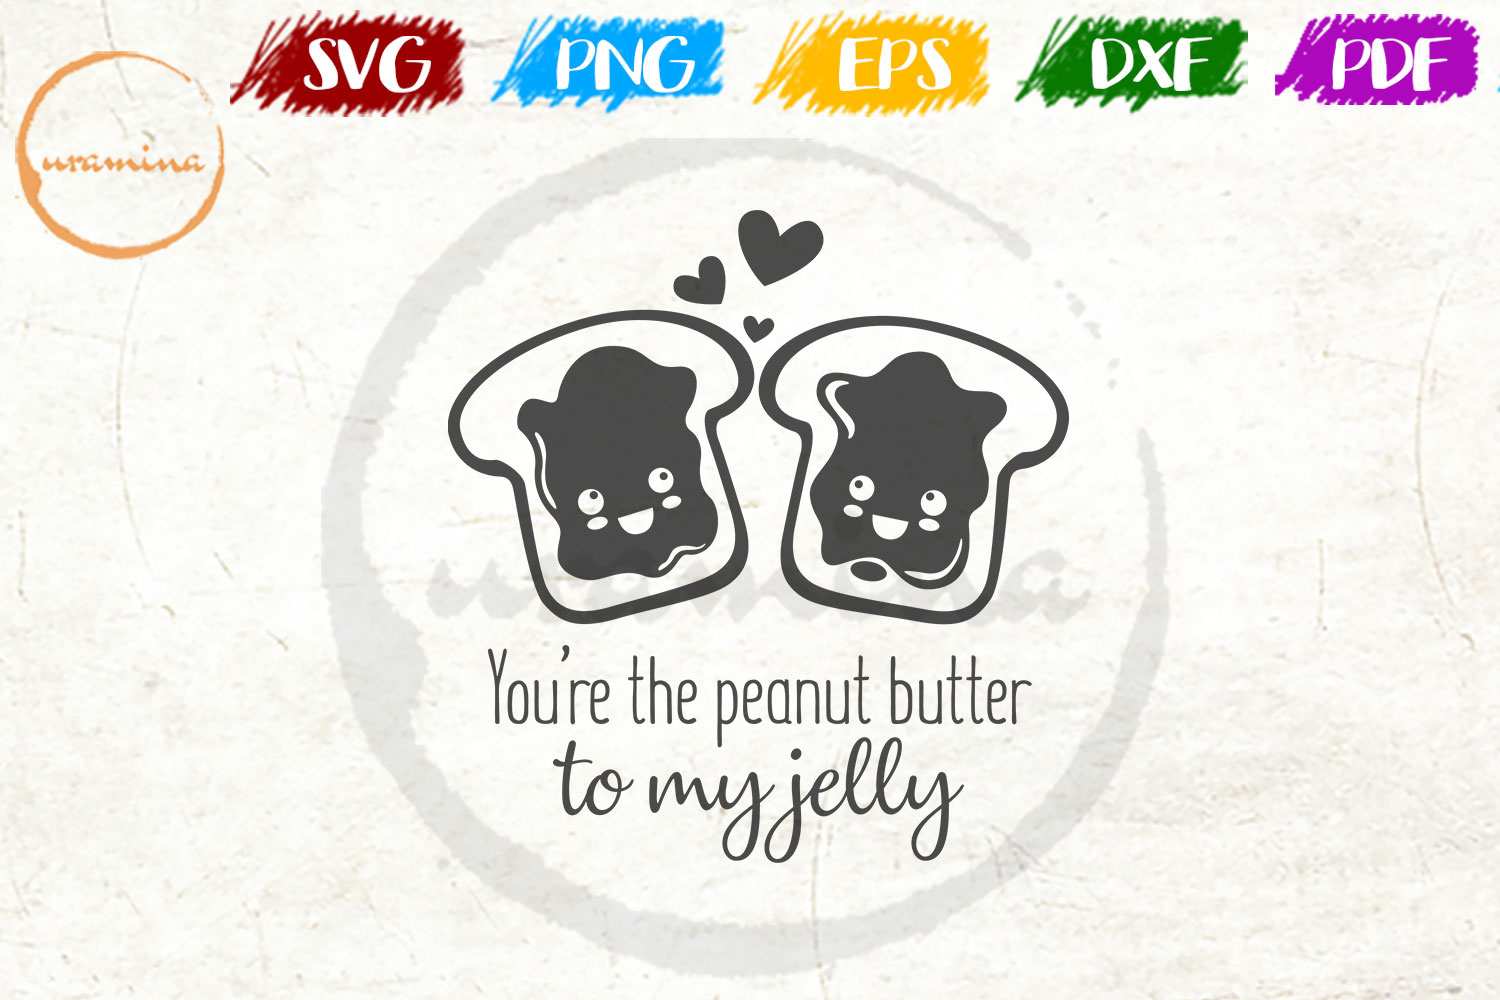 Download Free You Are The Peanut Butter To My Jelly Graphic By Uramina for Cricut Explore, Silhouette and other cutting machines.